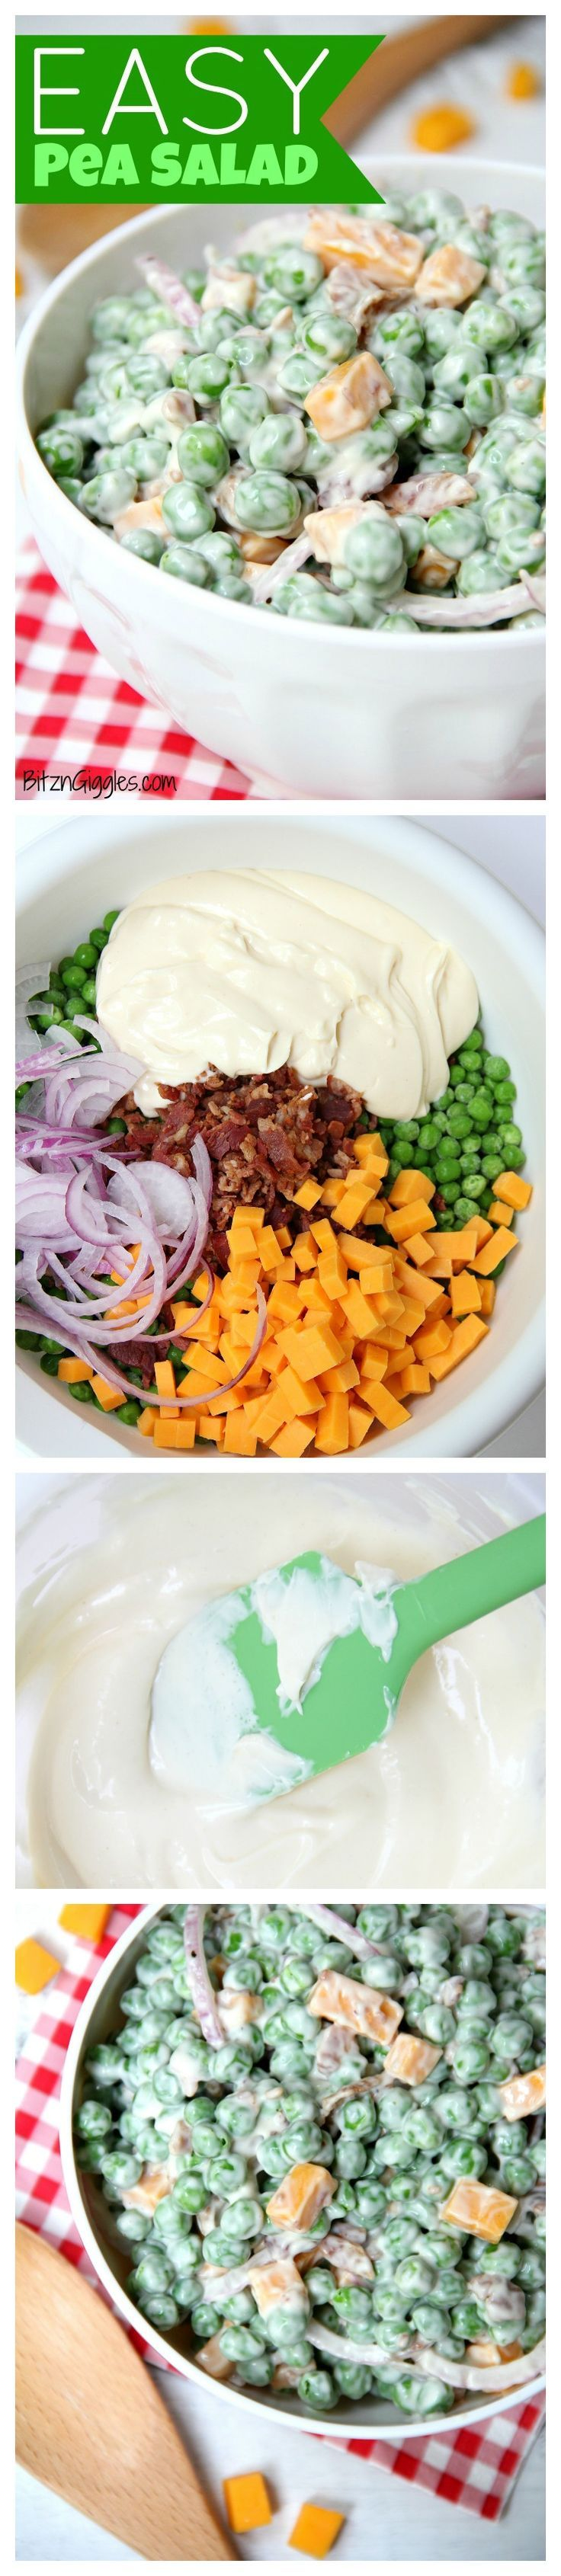 Easy Pea Salad - A summer salad perfect for potlucks and gatherings. Crisp green peas float alongside bacon, cheddar cheese and thinly sliced red onion in a sweet and creamy dressing. (Cheese Snacks Easy)